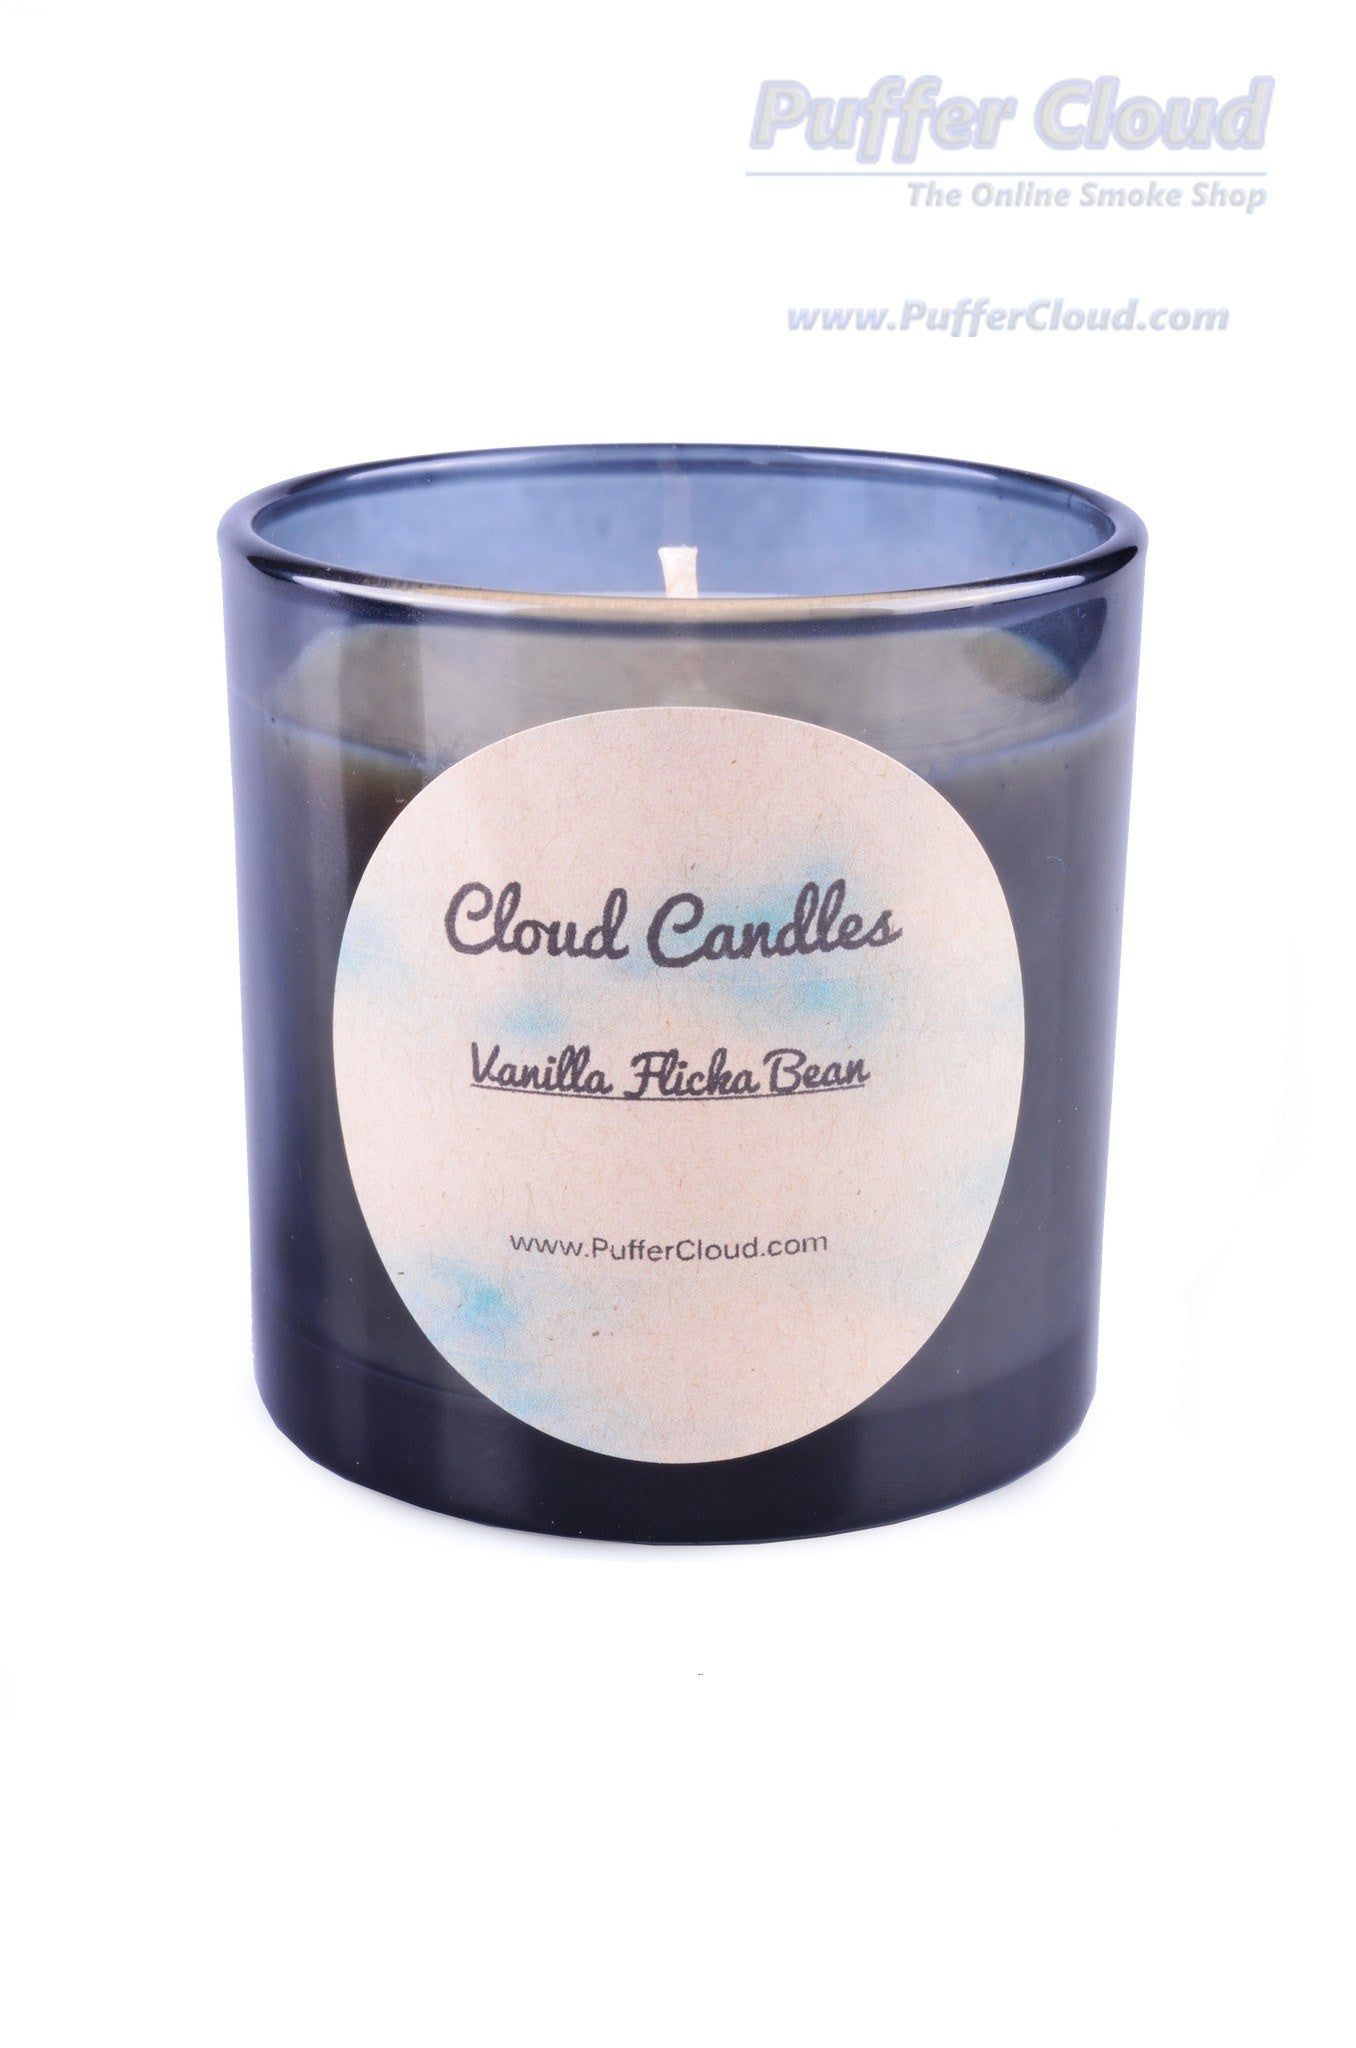 8 oz Vanilla Flicka Bean Soy Candle - Puffer Cloud | The Online Smoke Shop